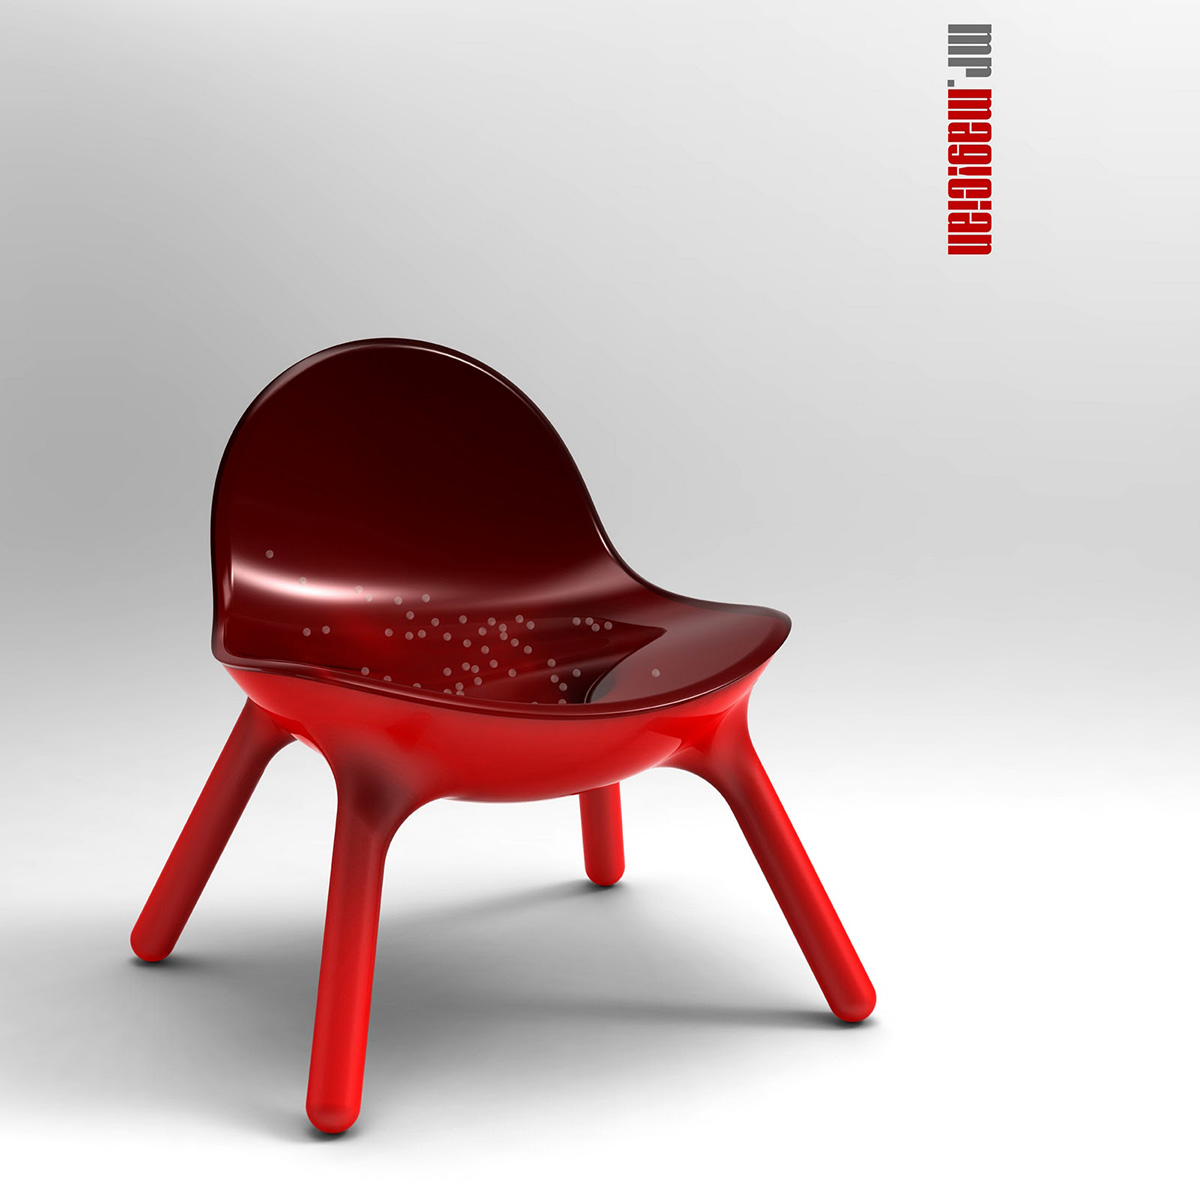 Mr Chair by designer Paul Sandip - 04